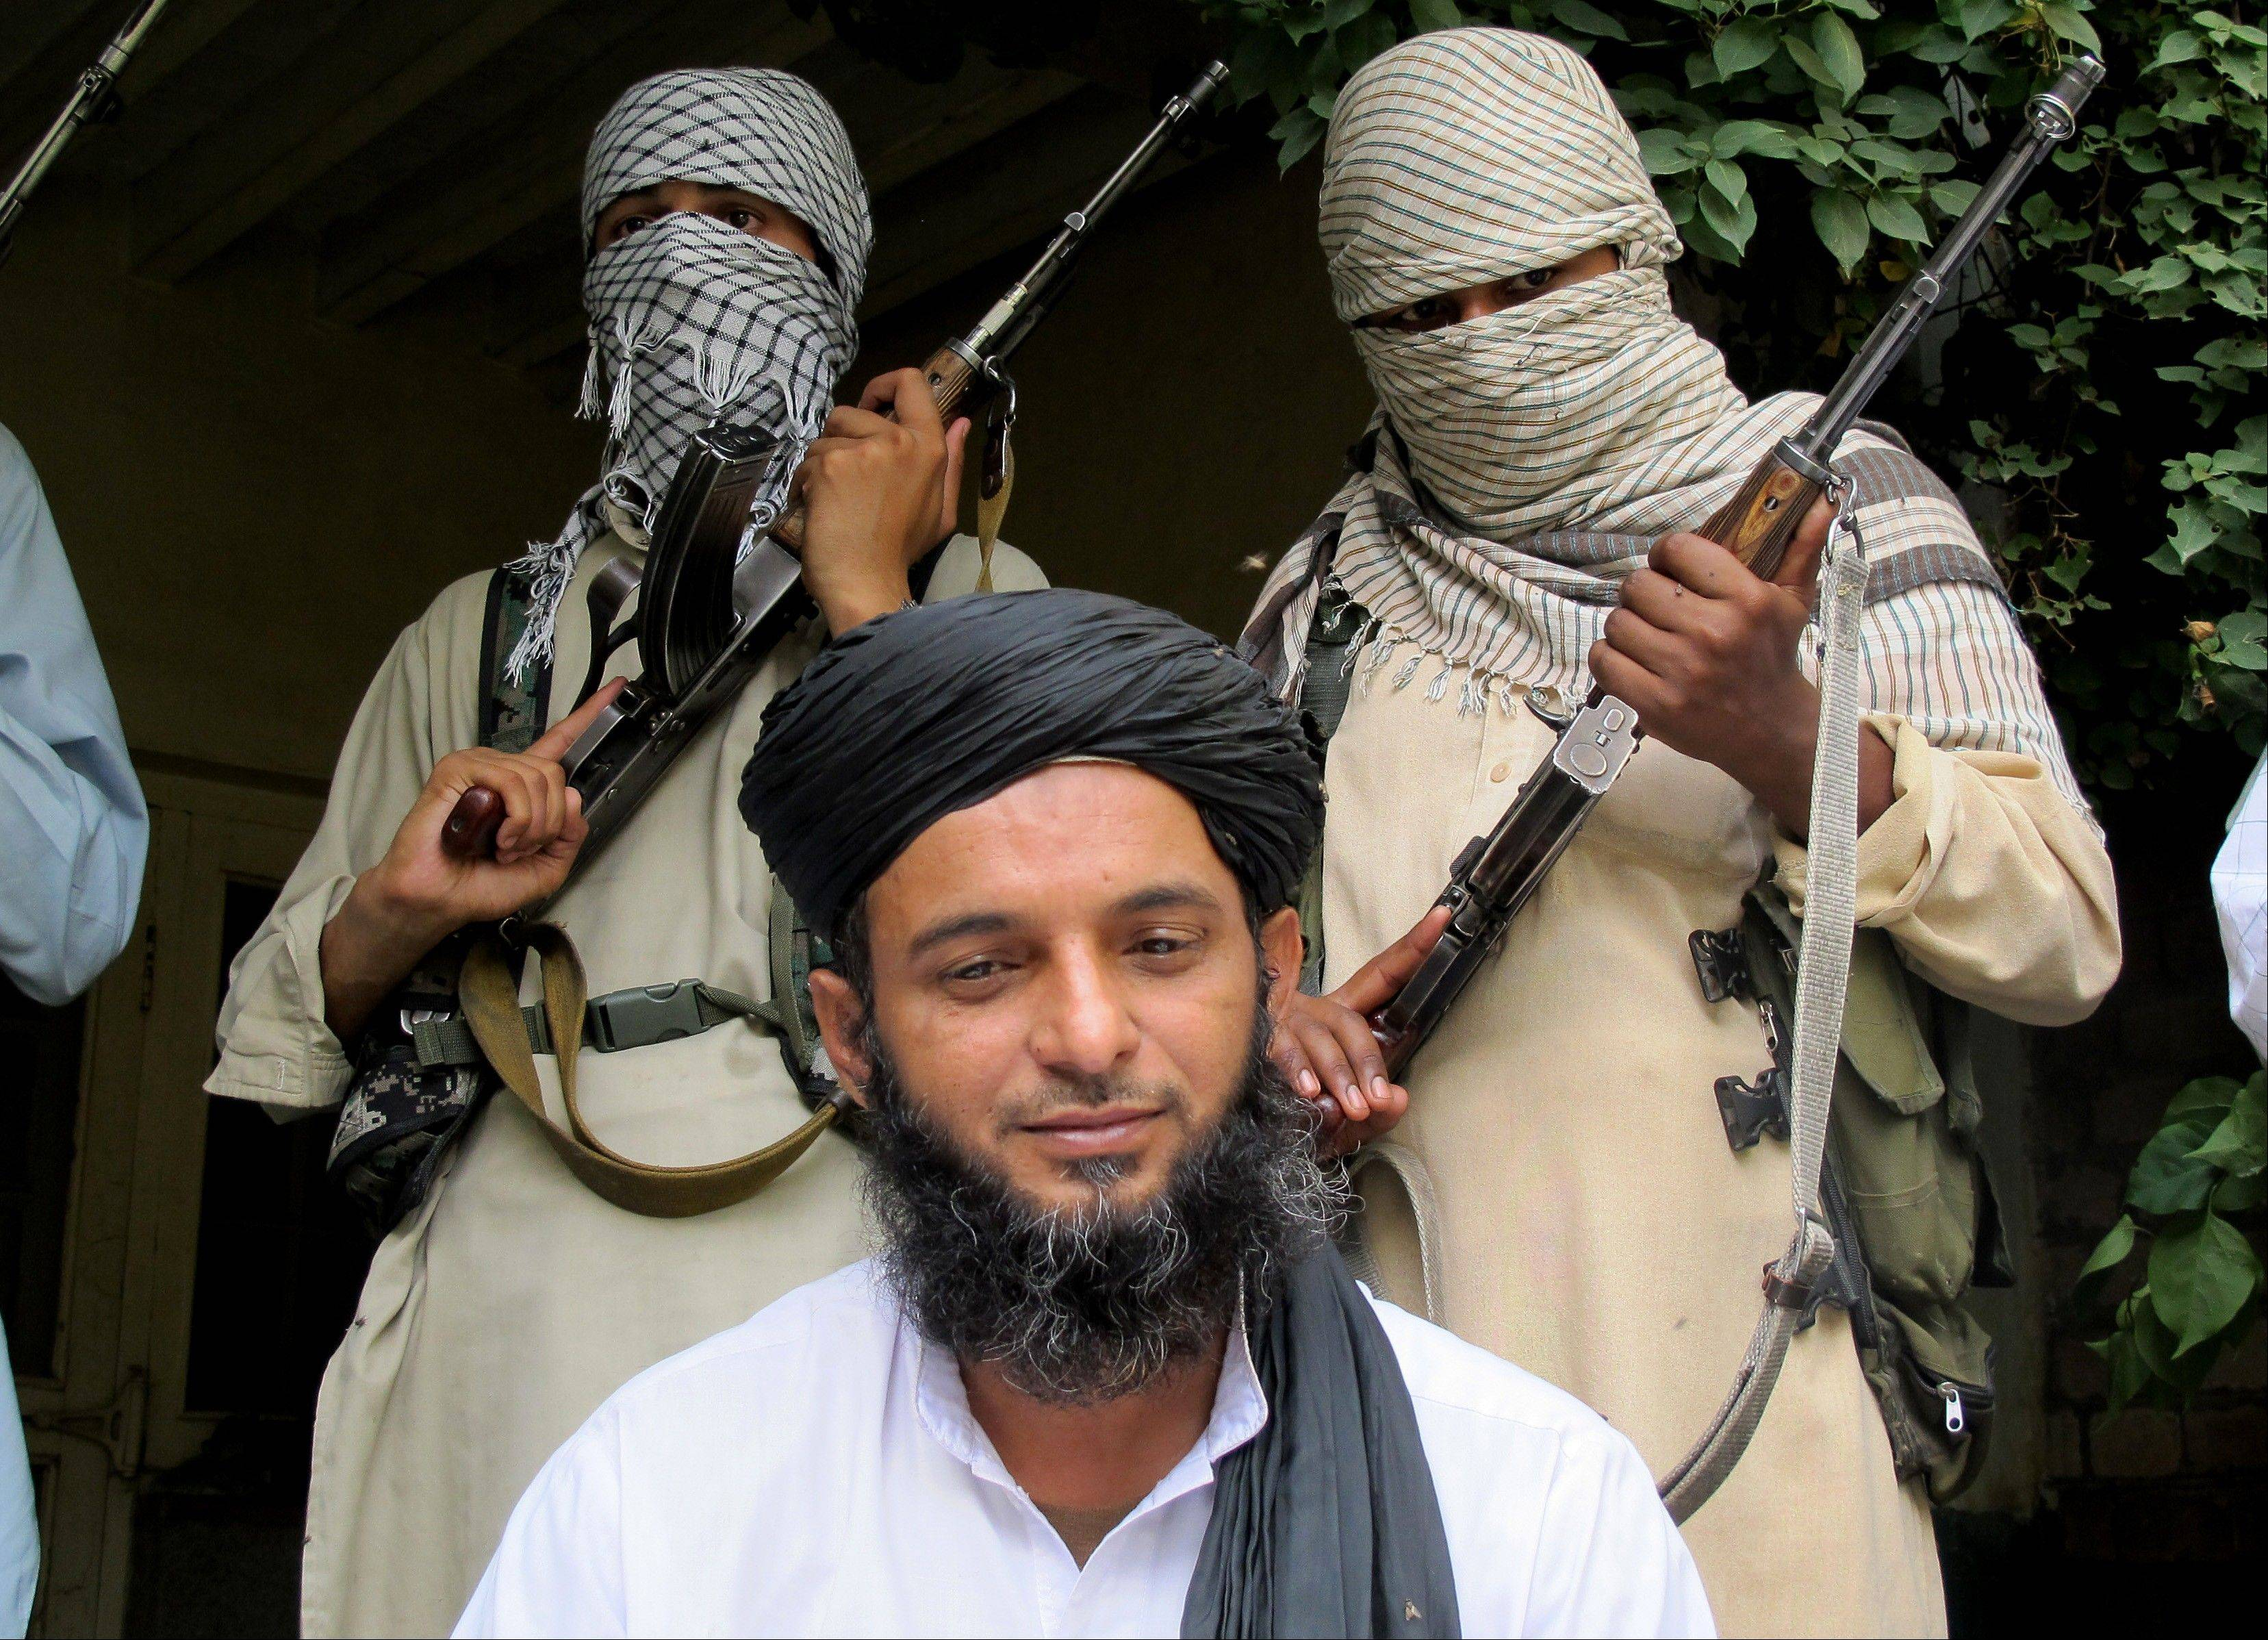 Asmatullah Muawiya, head of the Taliban�s faction of fighters from central Punjab province, welcomed the government�s recent offer to hold peace talks Thursday, raising the possibility the militant group has changed its stance after shunning negotiations earlier this year.